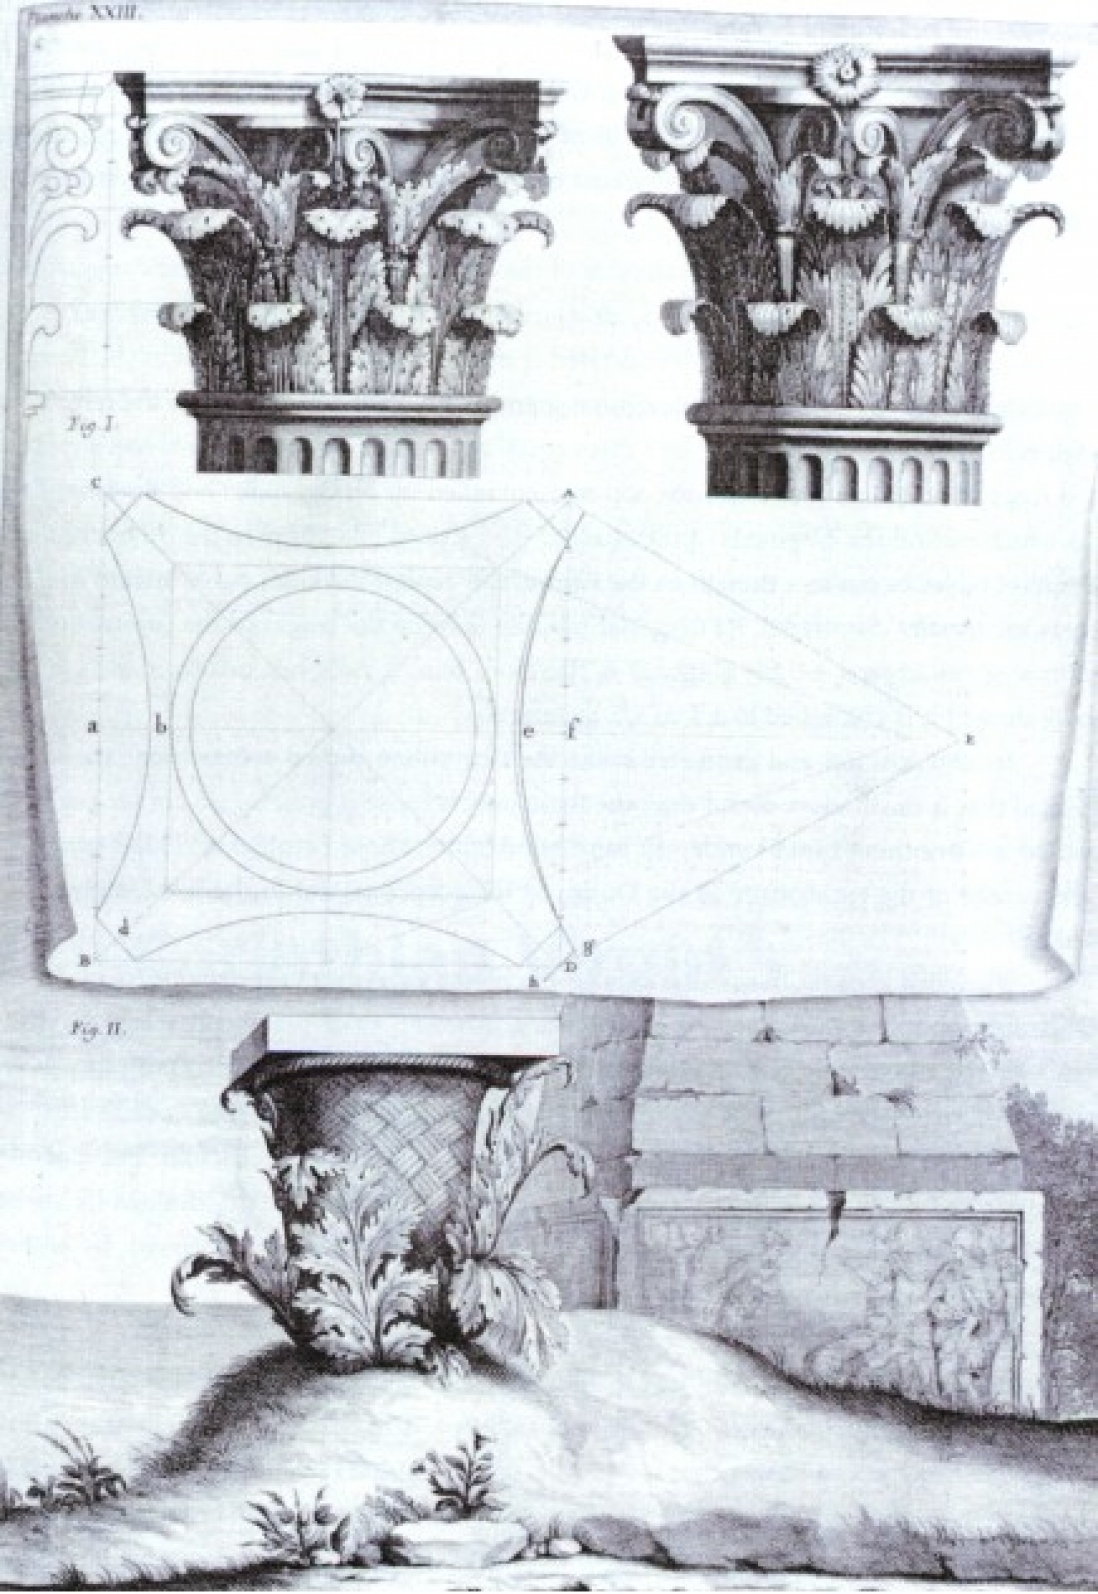 Image that shows acanthus growing around a basket which is placed on a grave, above this is a drawing of a capital featuring acanthus leaves. Perhaps it's origin